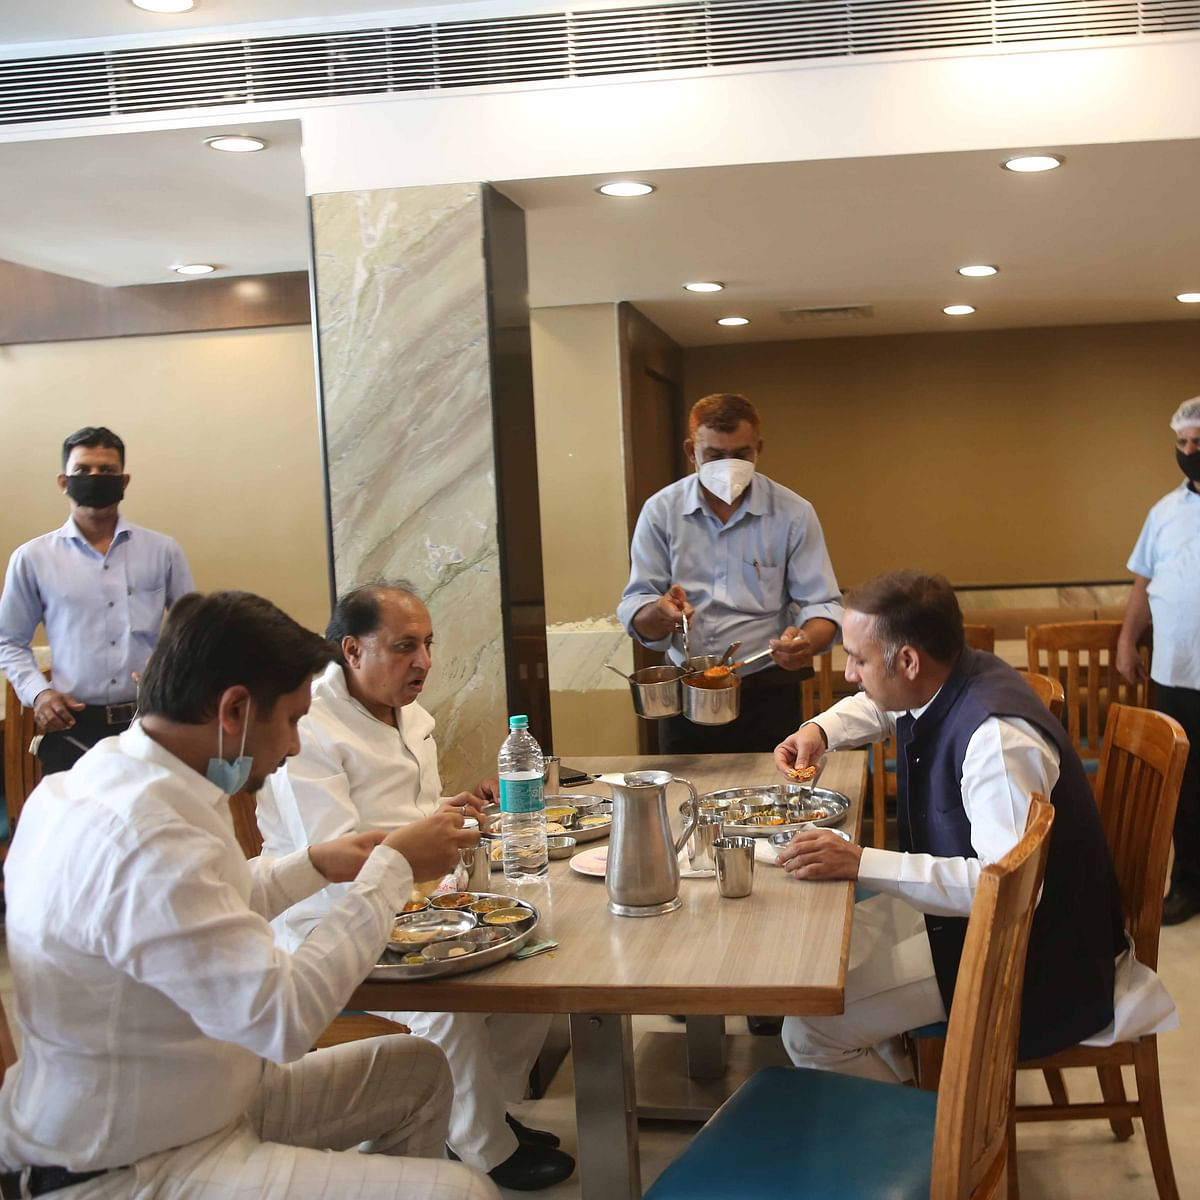 Bhopal: Reopening of restaurants delights city epicureans